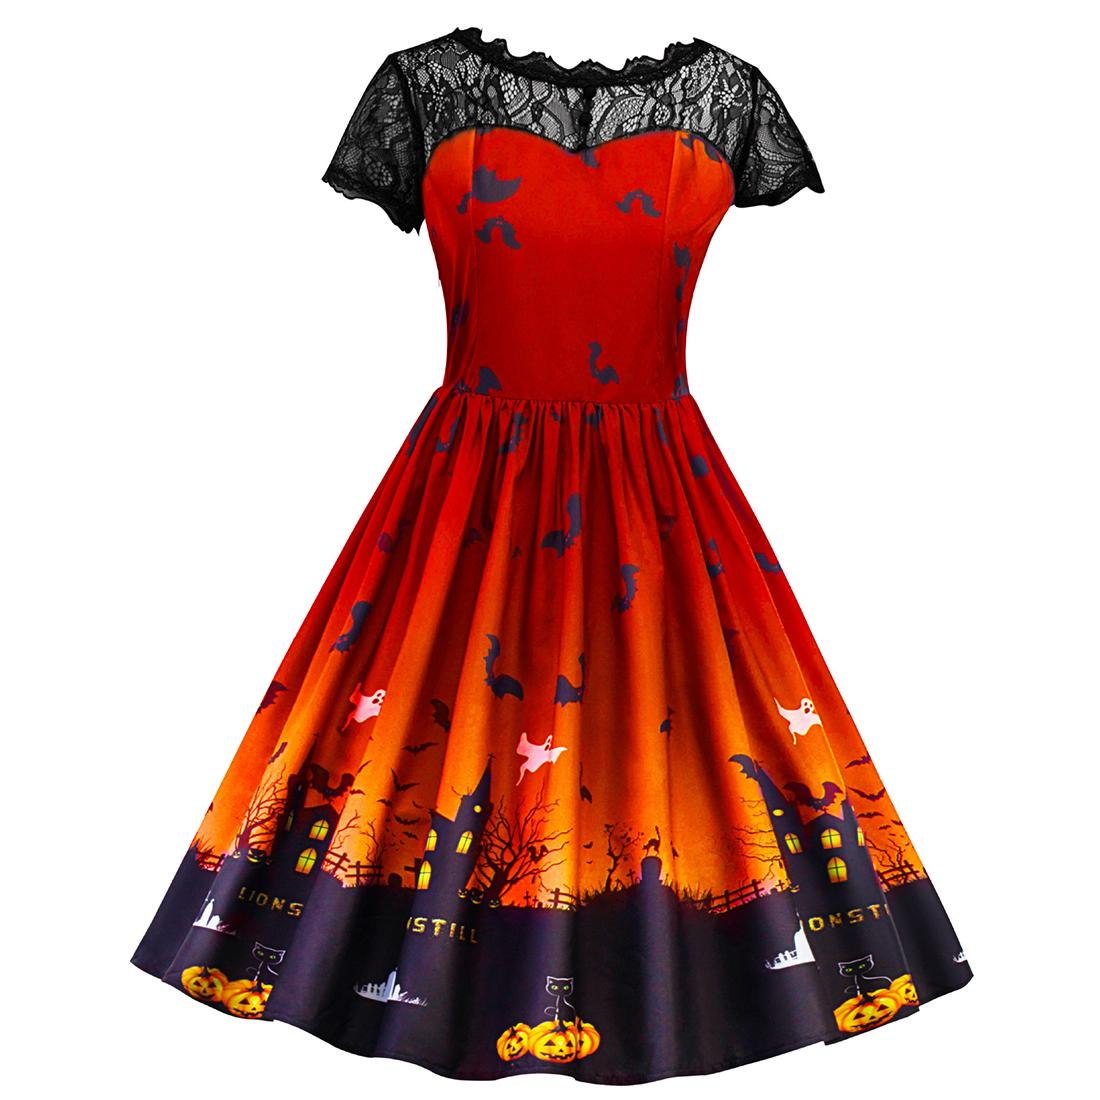 women winter dress 2017 plus size clothing halloween cosplay party